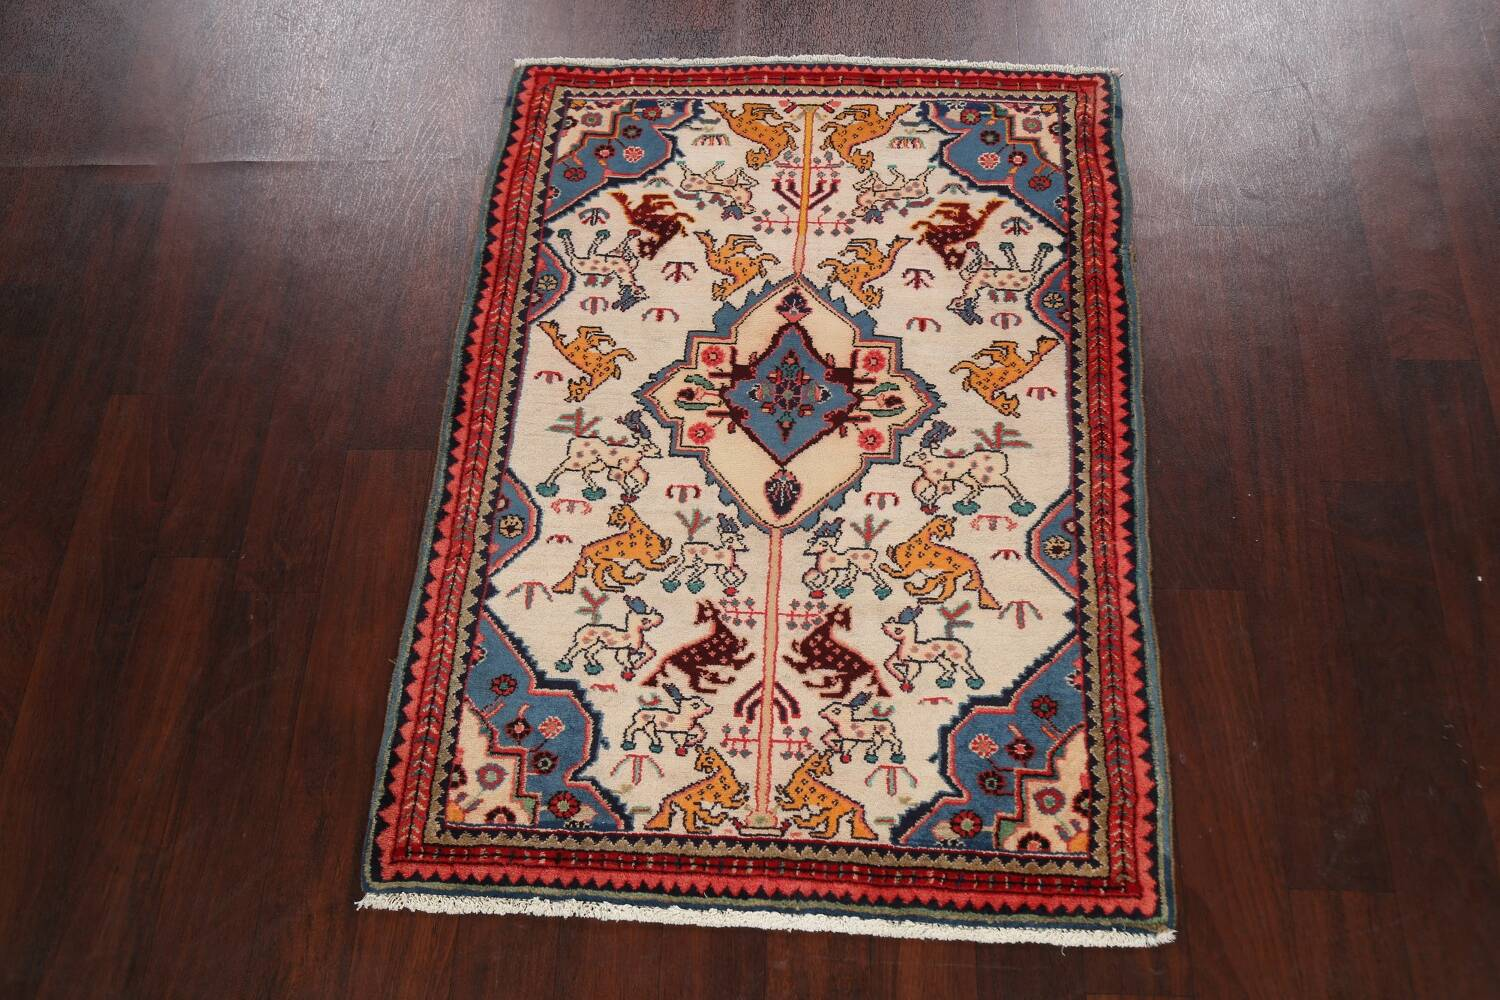 Animal Pictorial Vegetable Dye Senneh Persian Area Rug 3x5 image 2